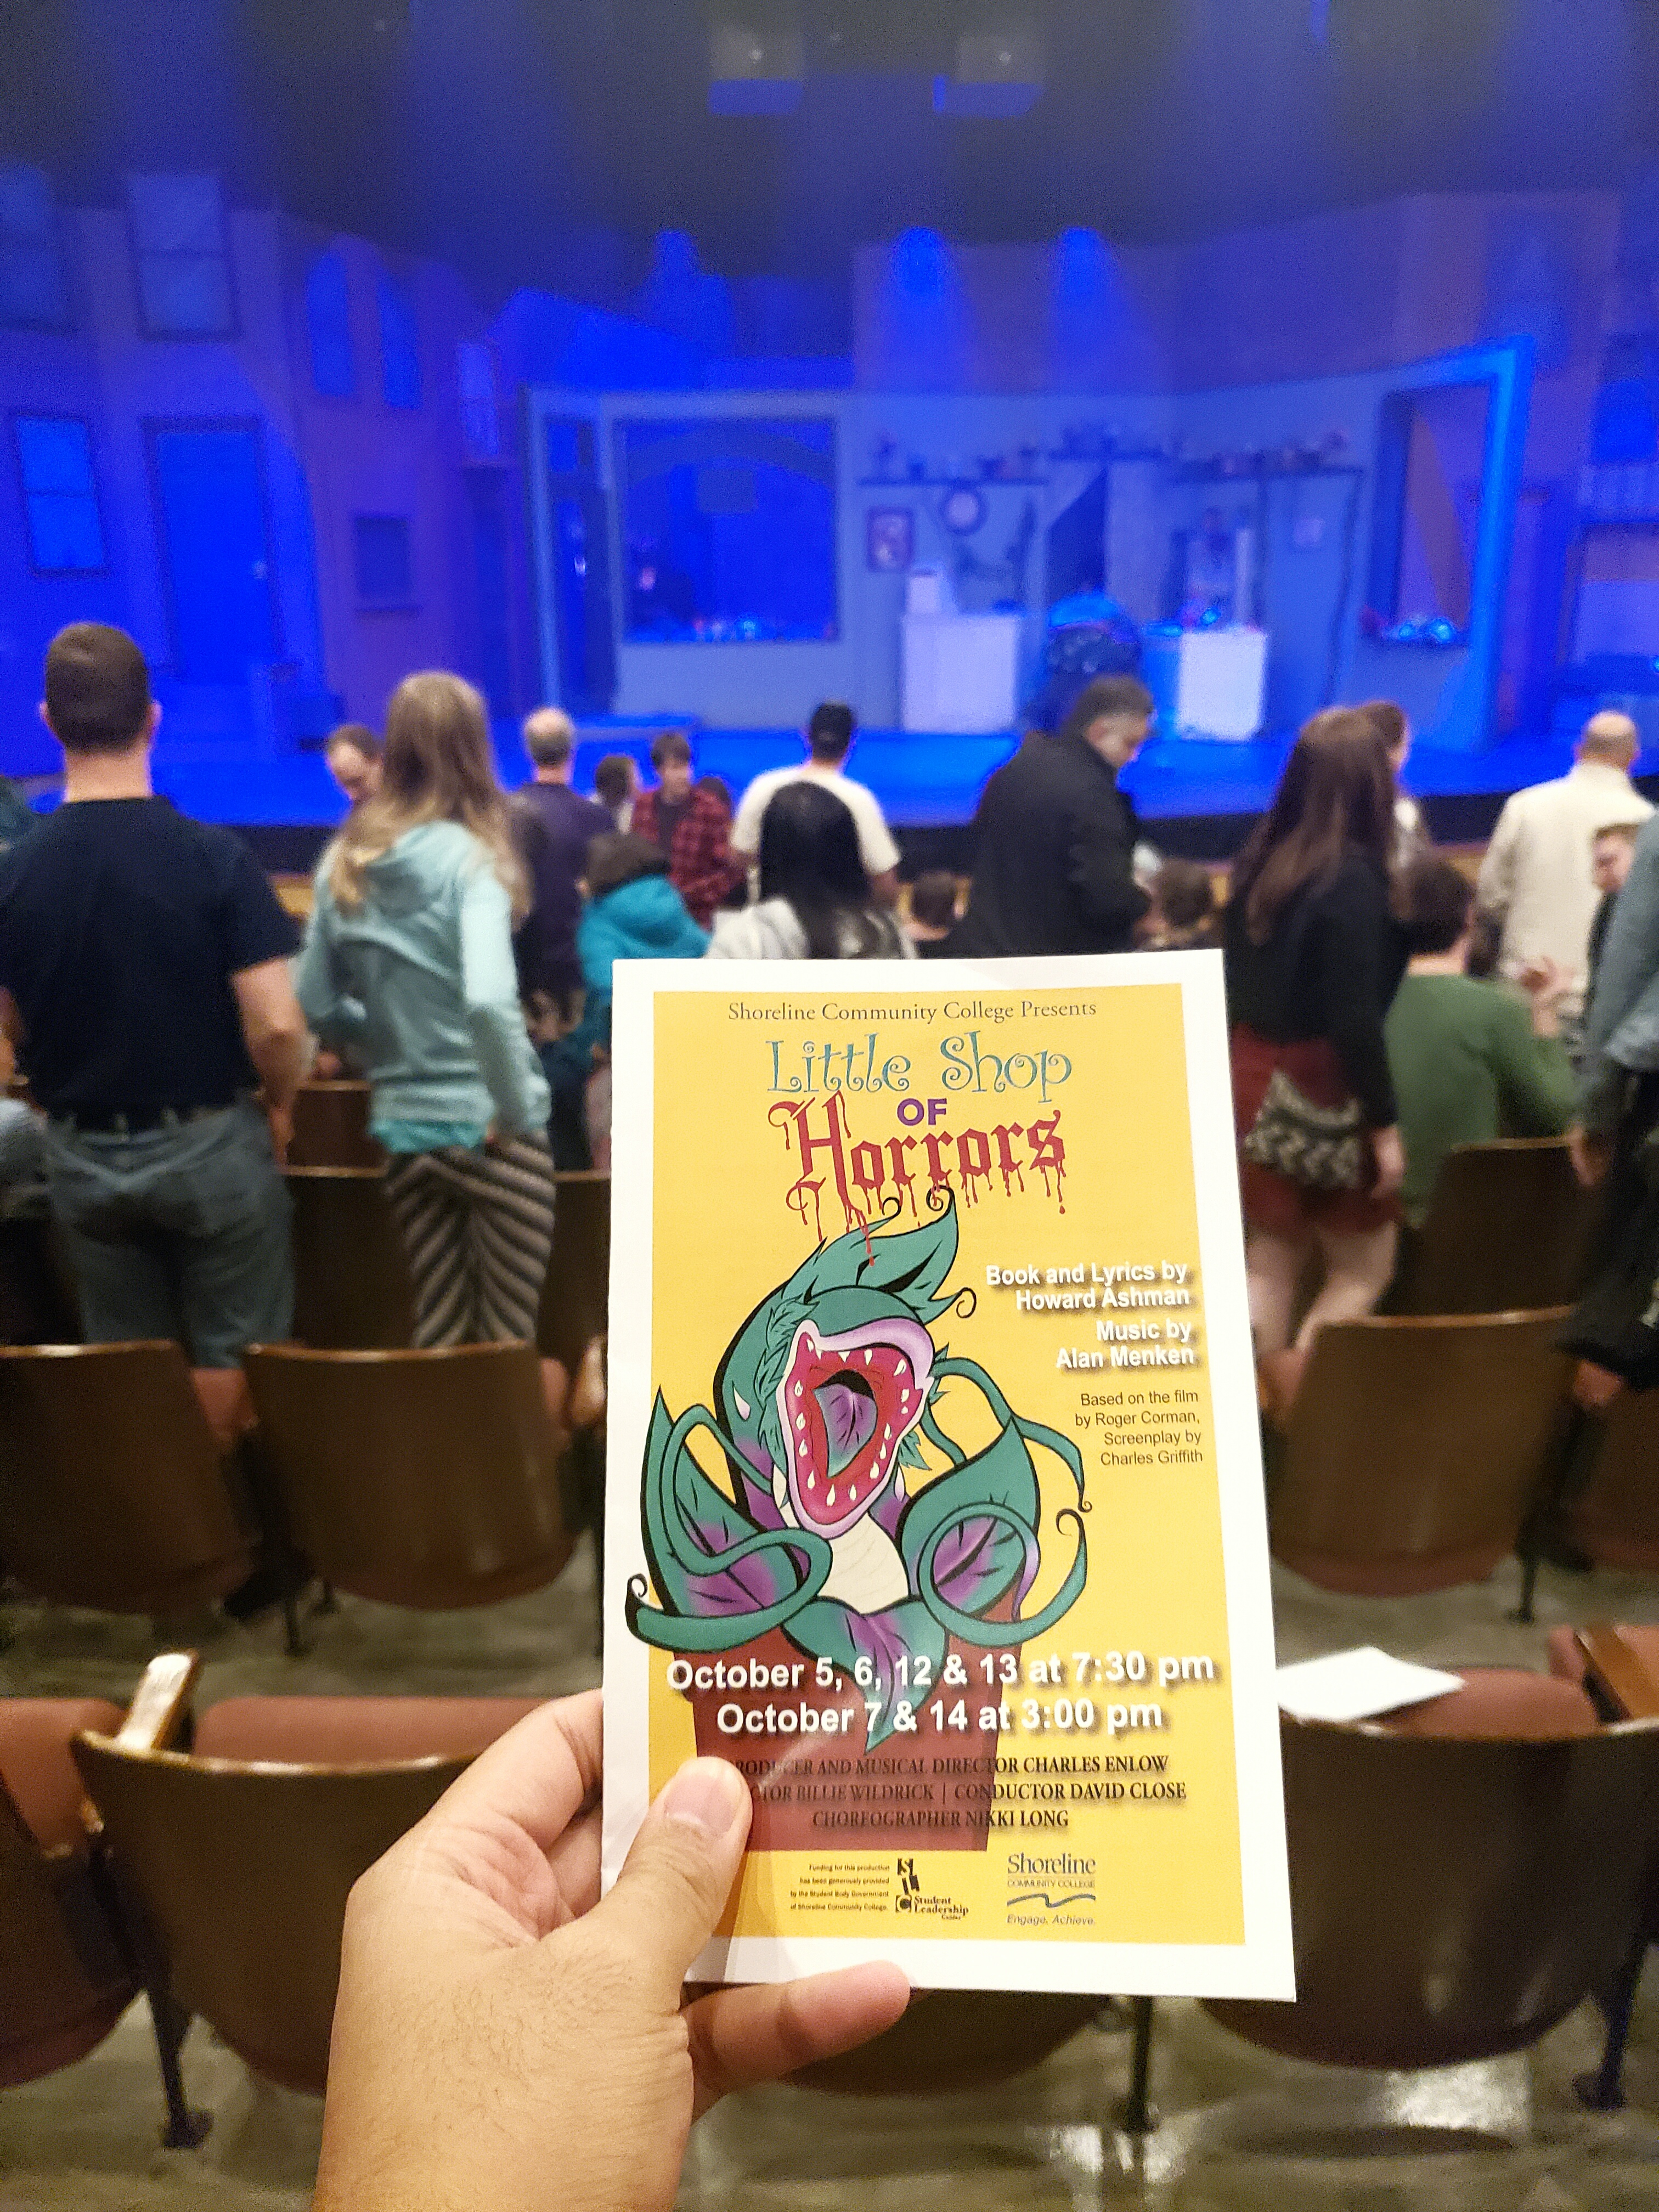 Watched the Little Shop of Horrors musical. The main characters were uniquely portrayed by puppets (like in Avenue Q). Sadly, the urchin ensemble desperately lacked its characteristic soul music quality.